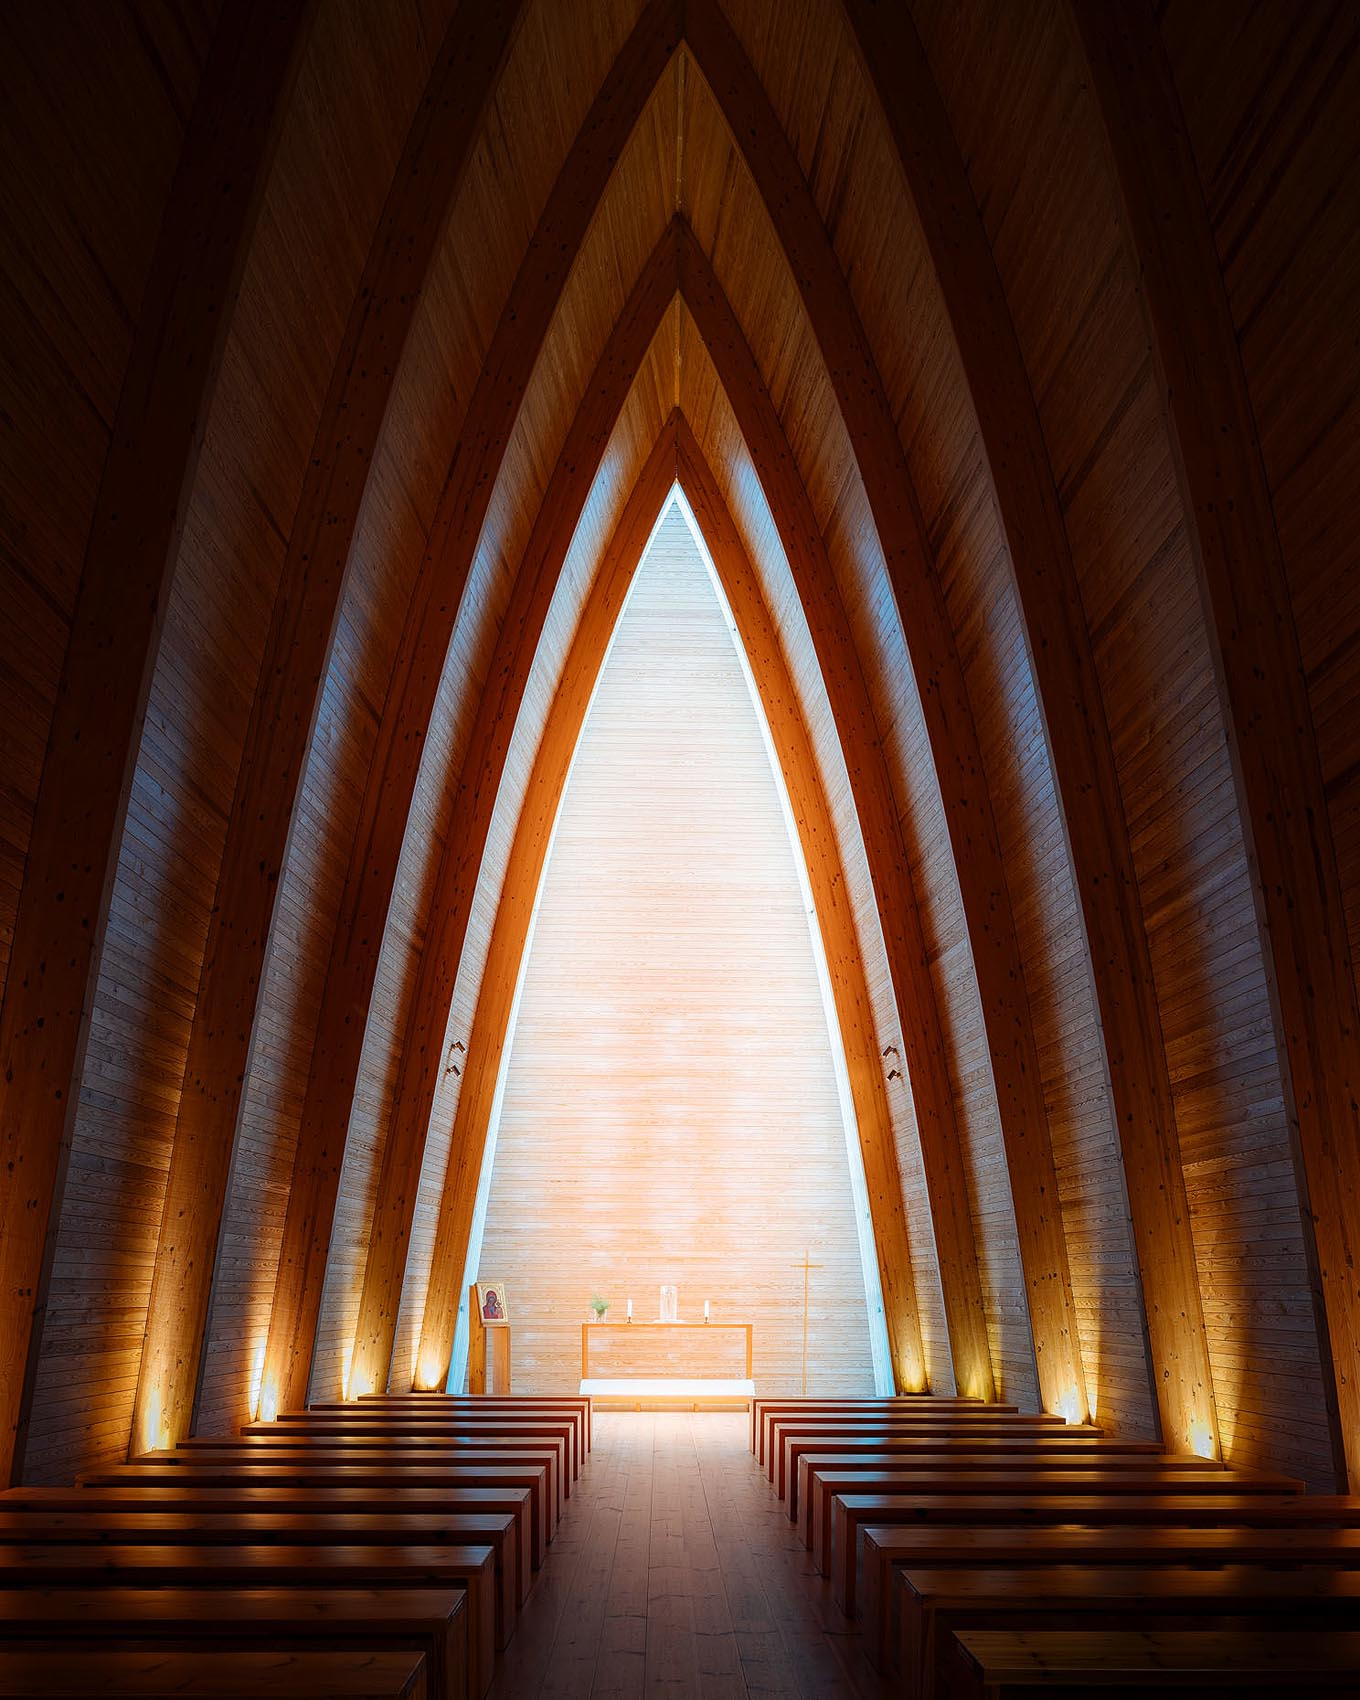 st-henrys-ecumenical-art-chapel-turku-finland-modern-interior-photography